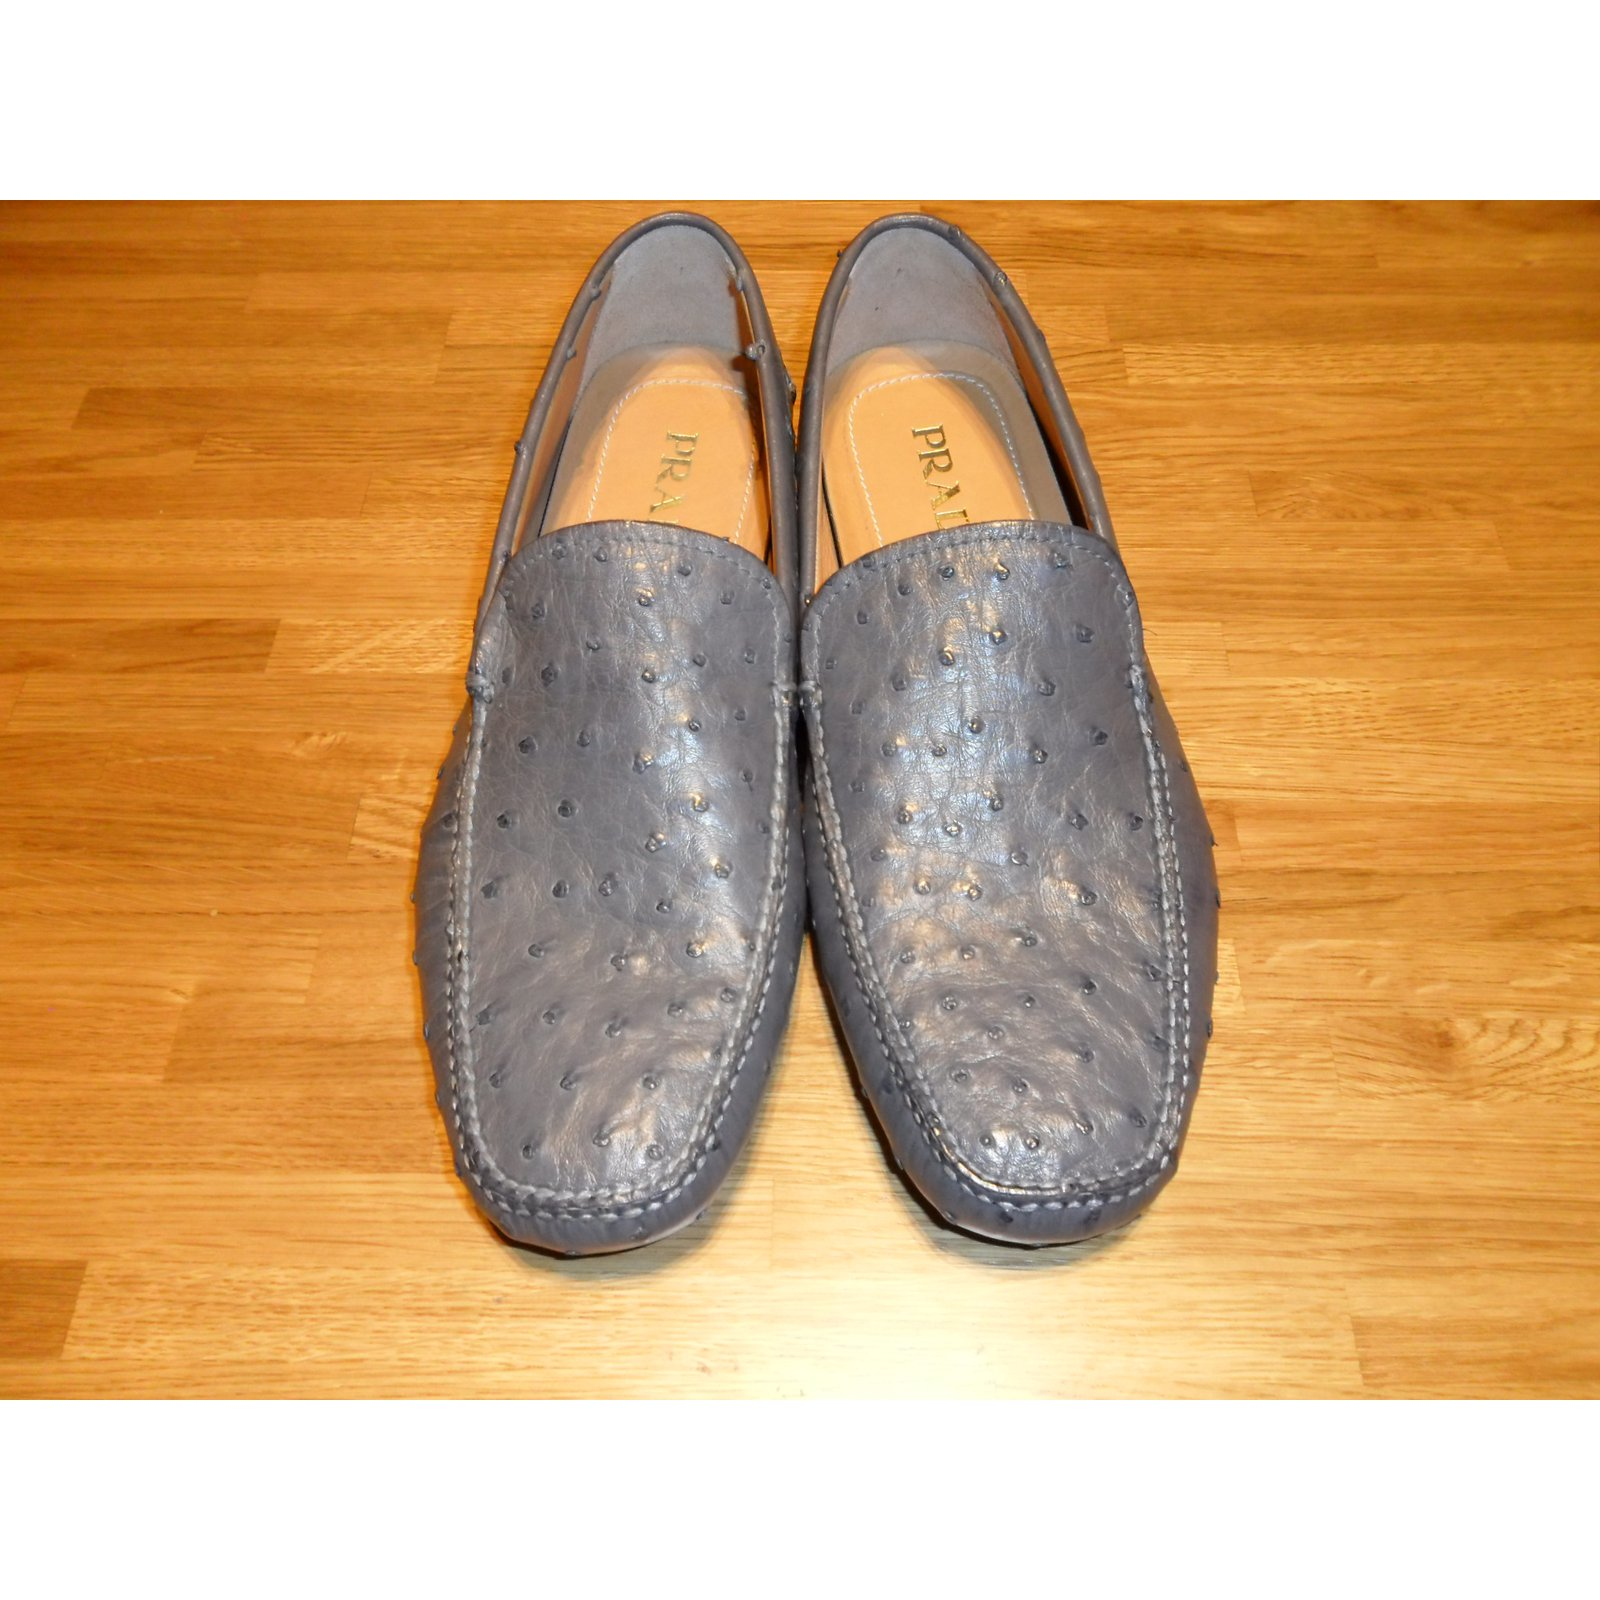 7621174bf88 Prada PRADA BRAND NEW MEN S OSTRICH LEATHER DRIVING SHOES Loafers Slip ons  Other Grey ref.32879 - Joli Closet